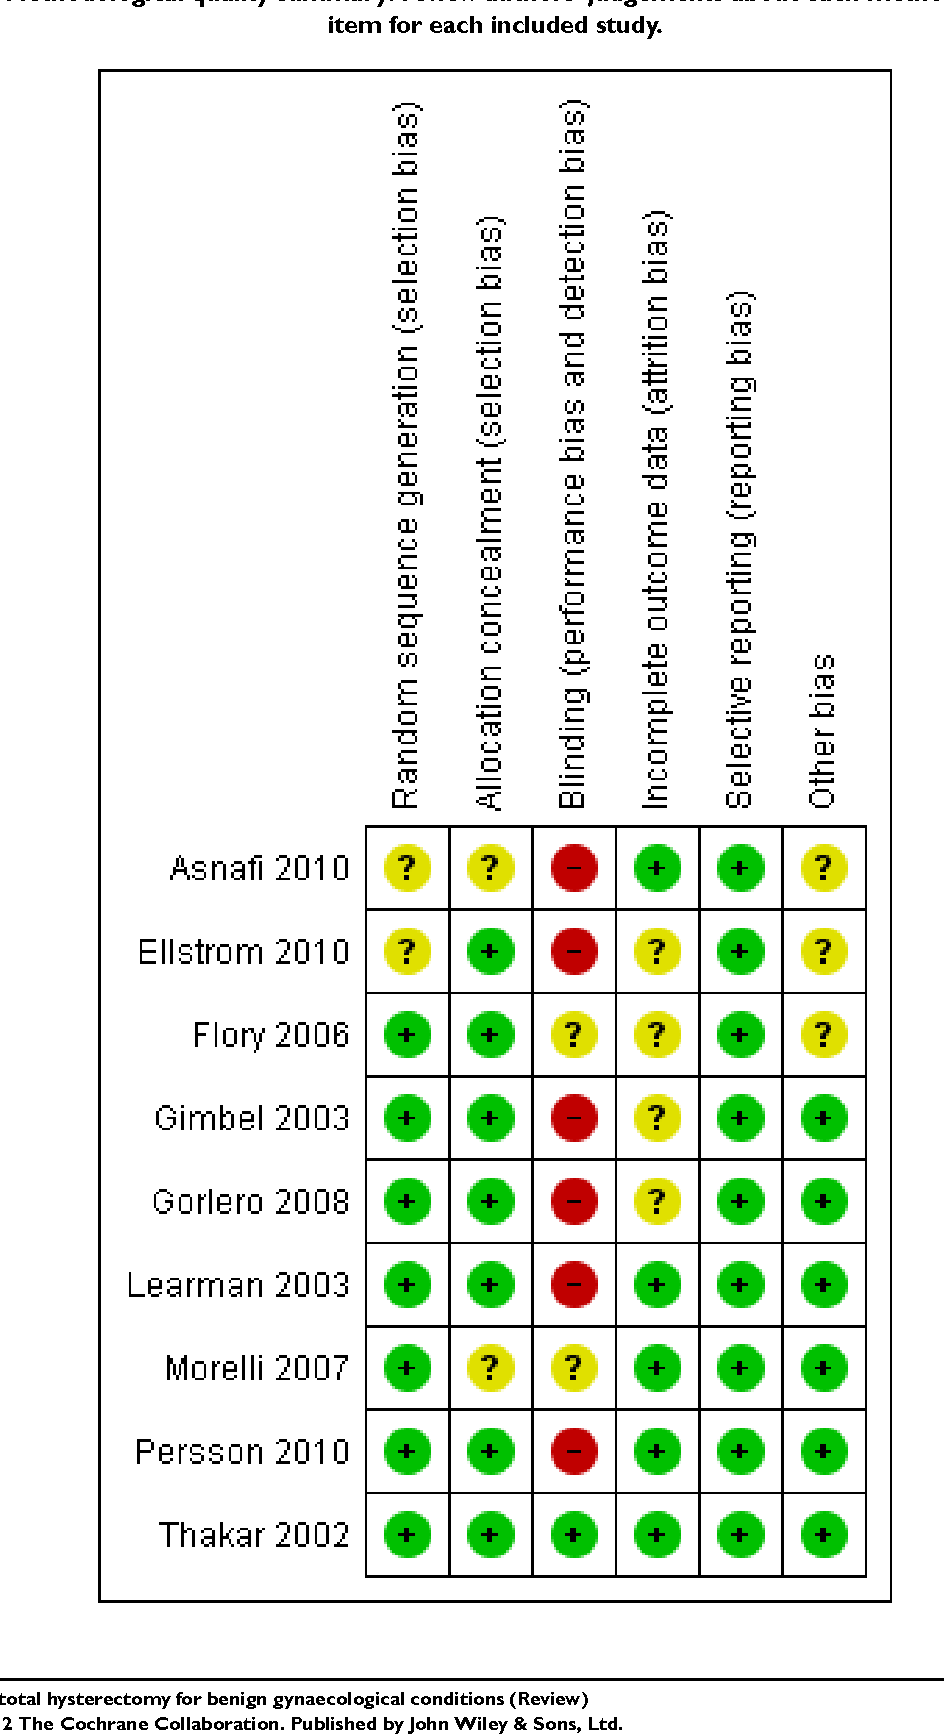 Figure 1. Methodological quality summary: review authors' judgements about each methodological quality item for each included study.